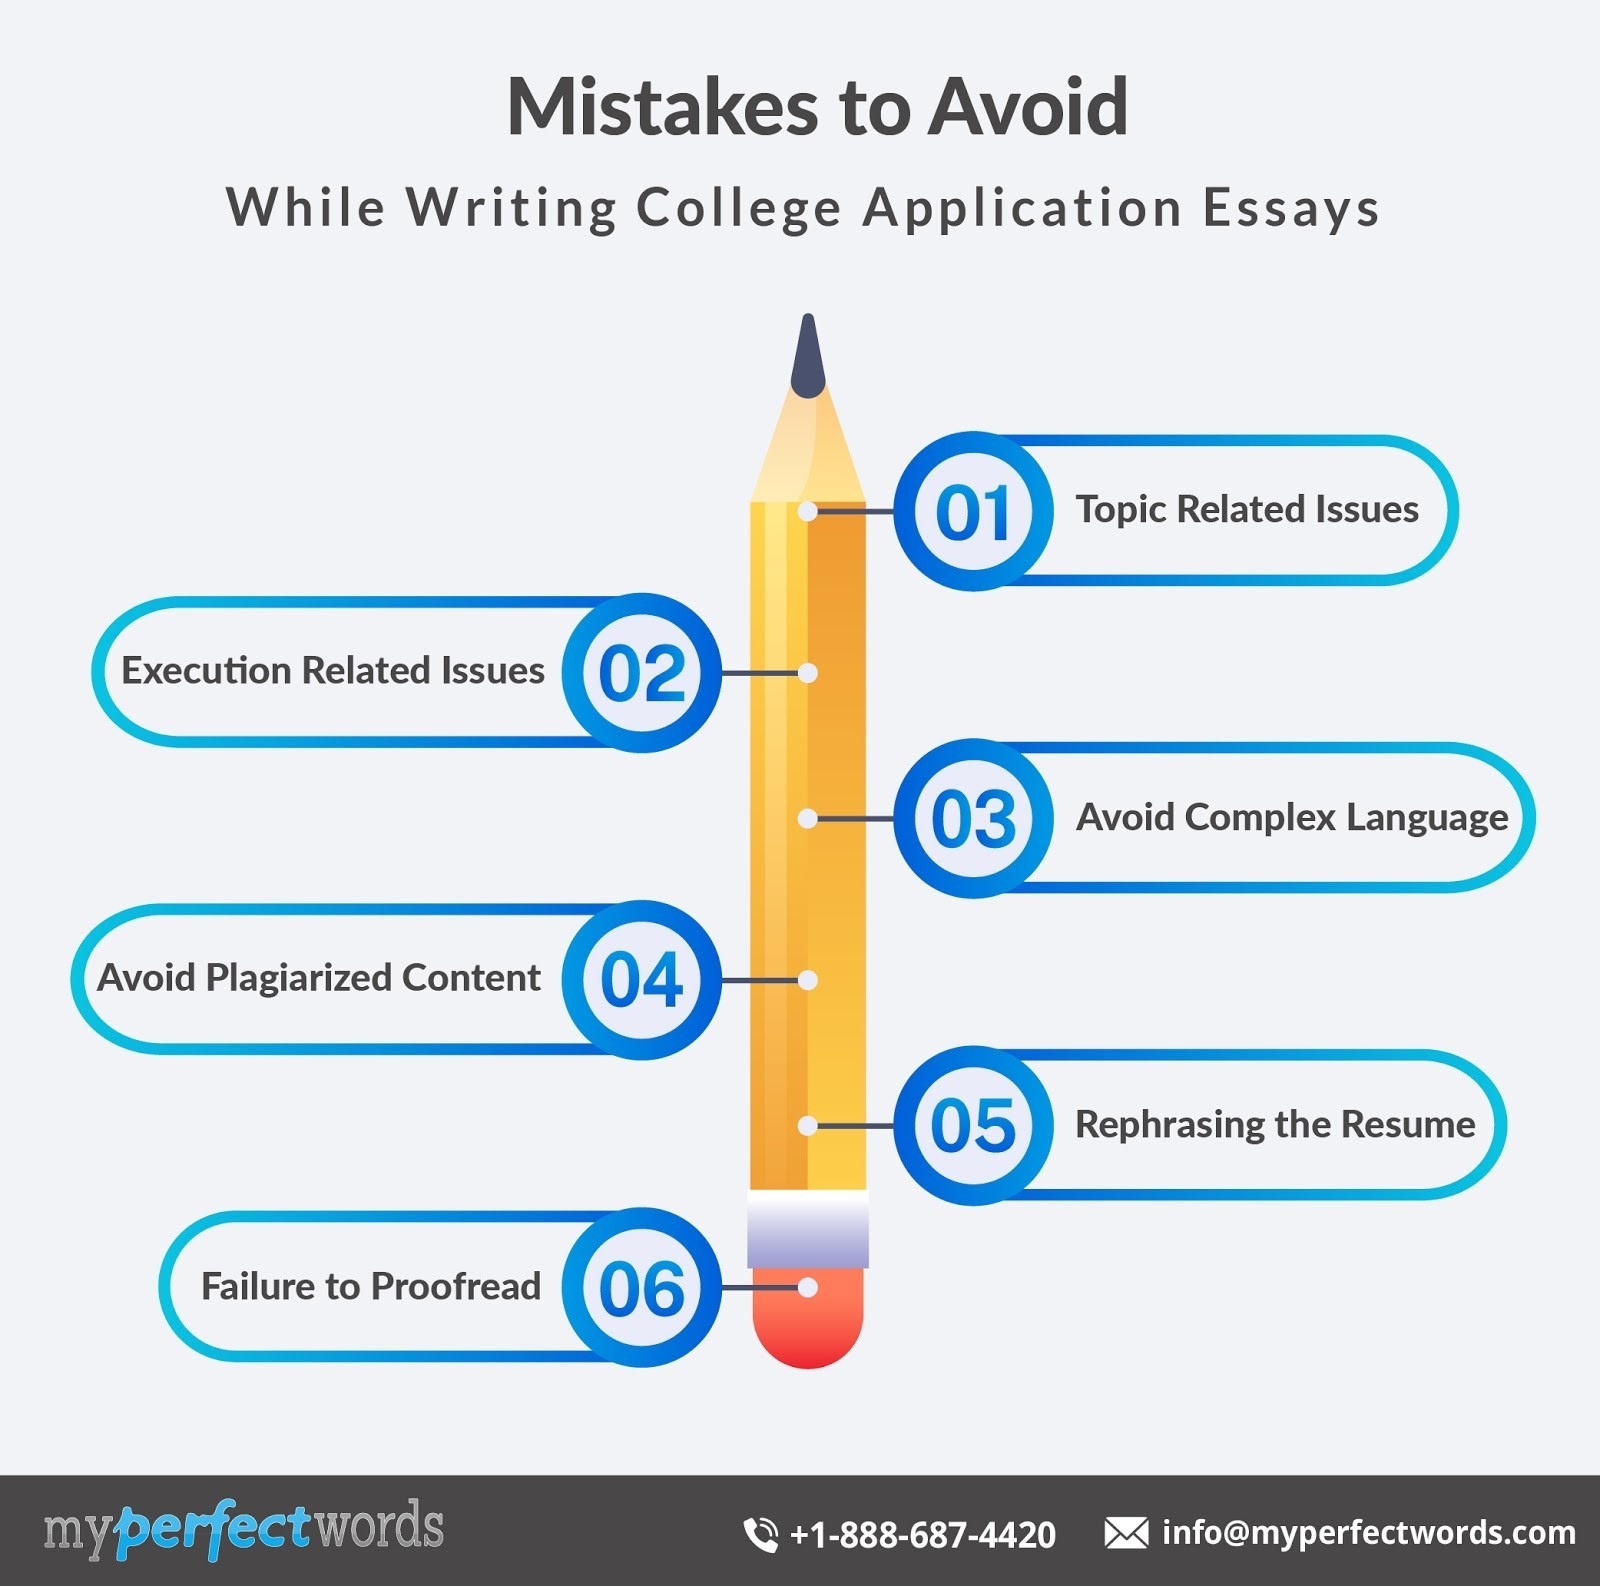 Mistakes to Avoid while Writing a College Application Essay